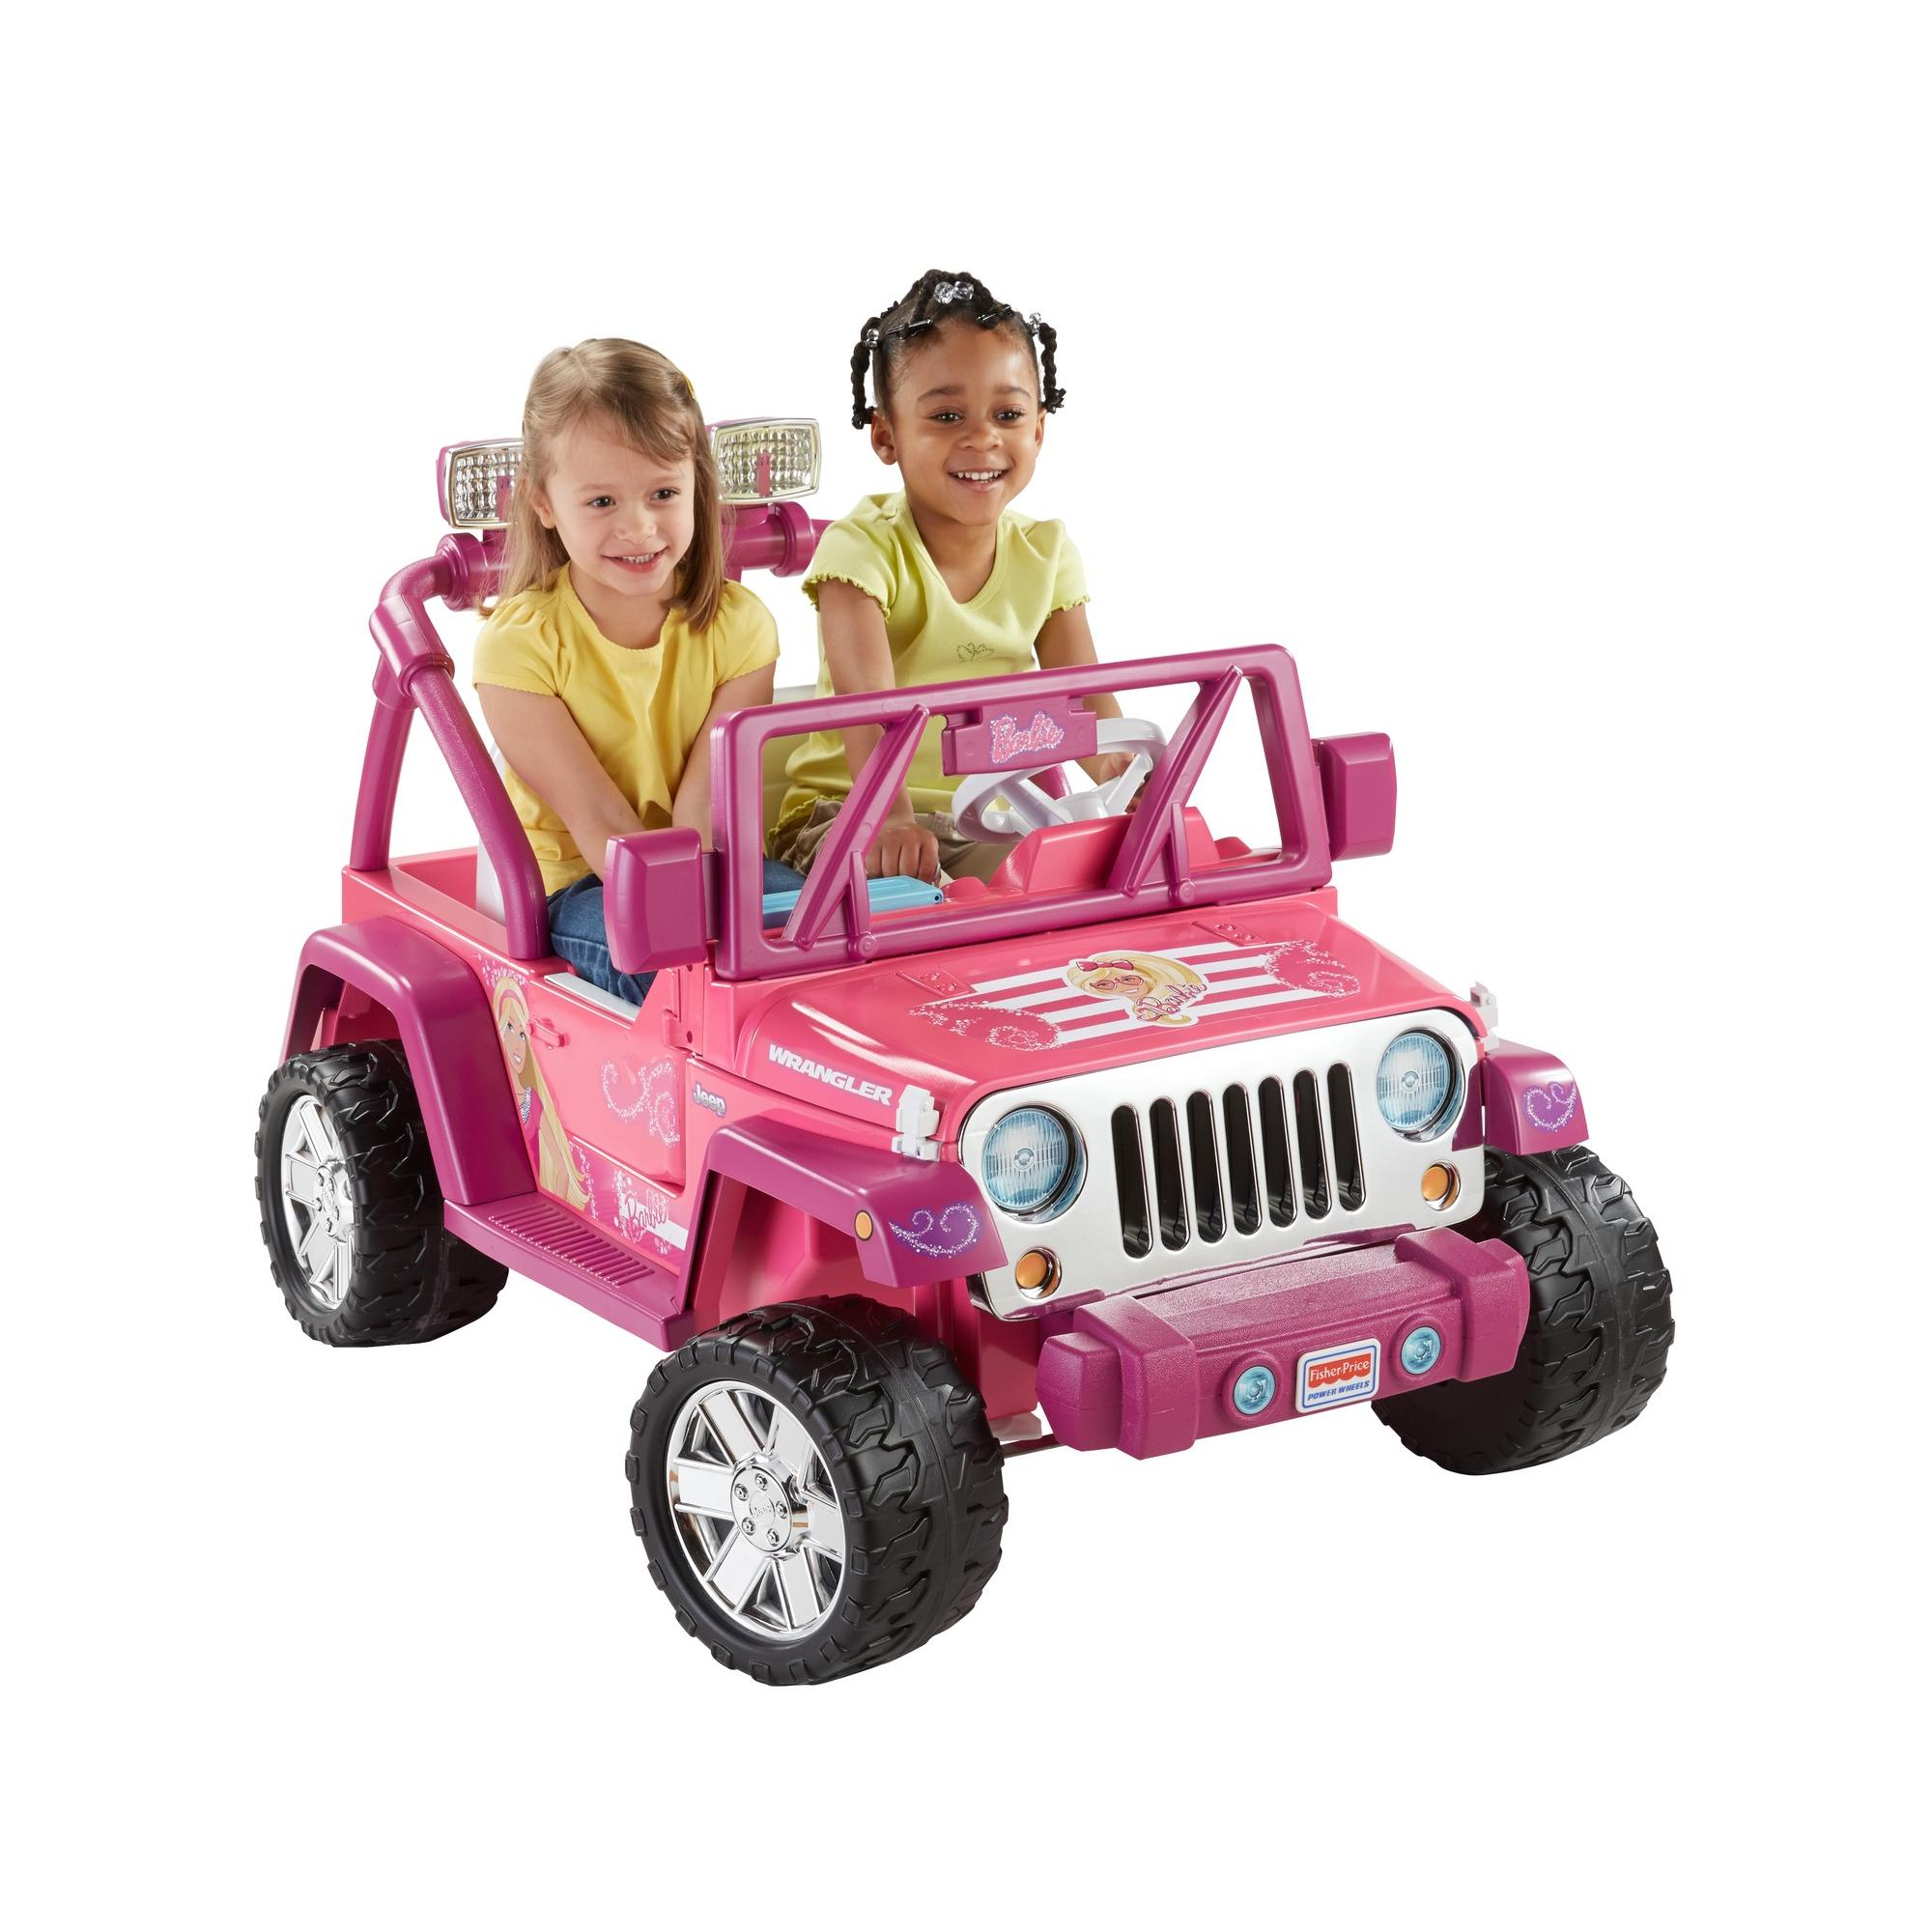 Power Wheels Barbie Deluxe Jeep Wrangler 12-Volt Battery-Powered Ride-On by FISHER PRICE